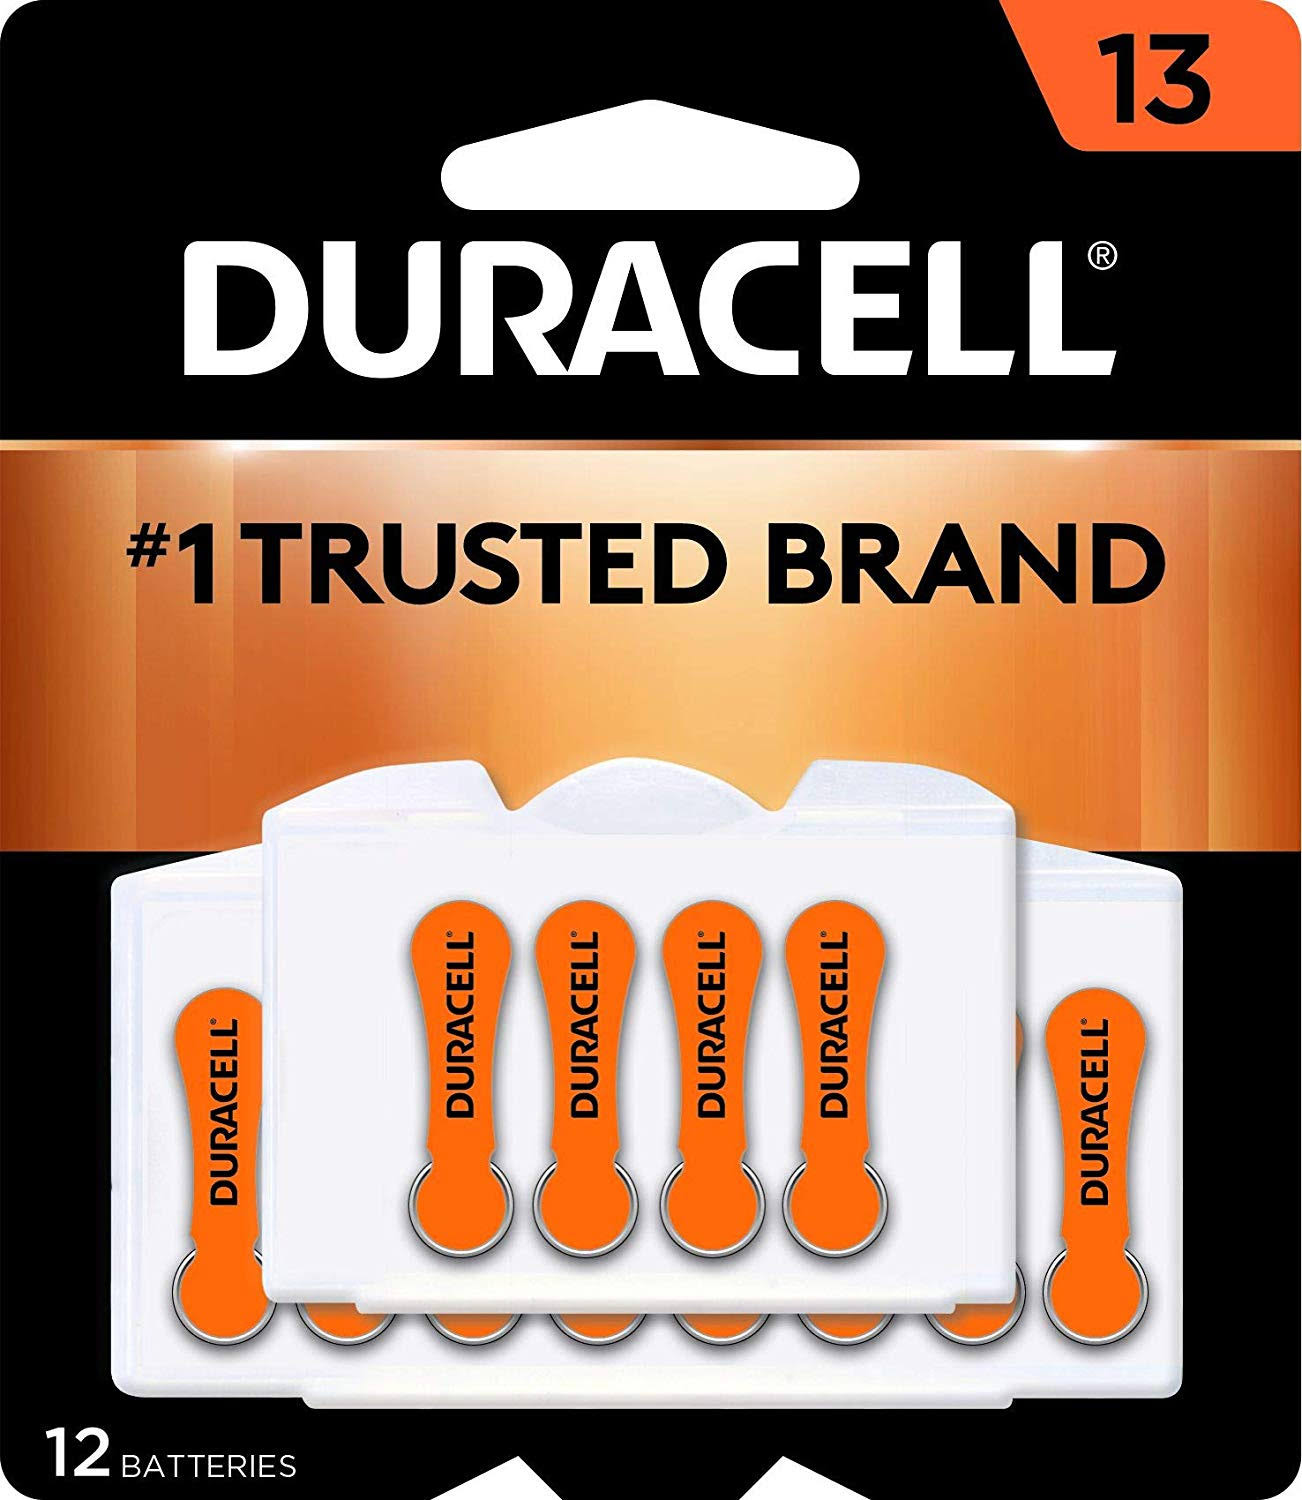 Duracell Easy Tab Hearing Aid Batteries - Size 13, 12pcs